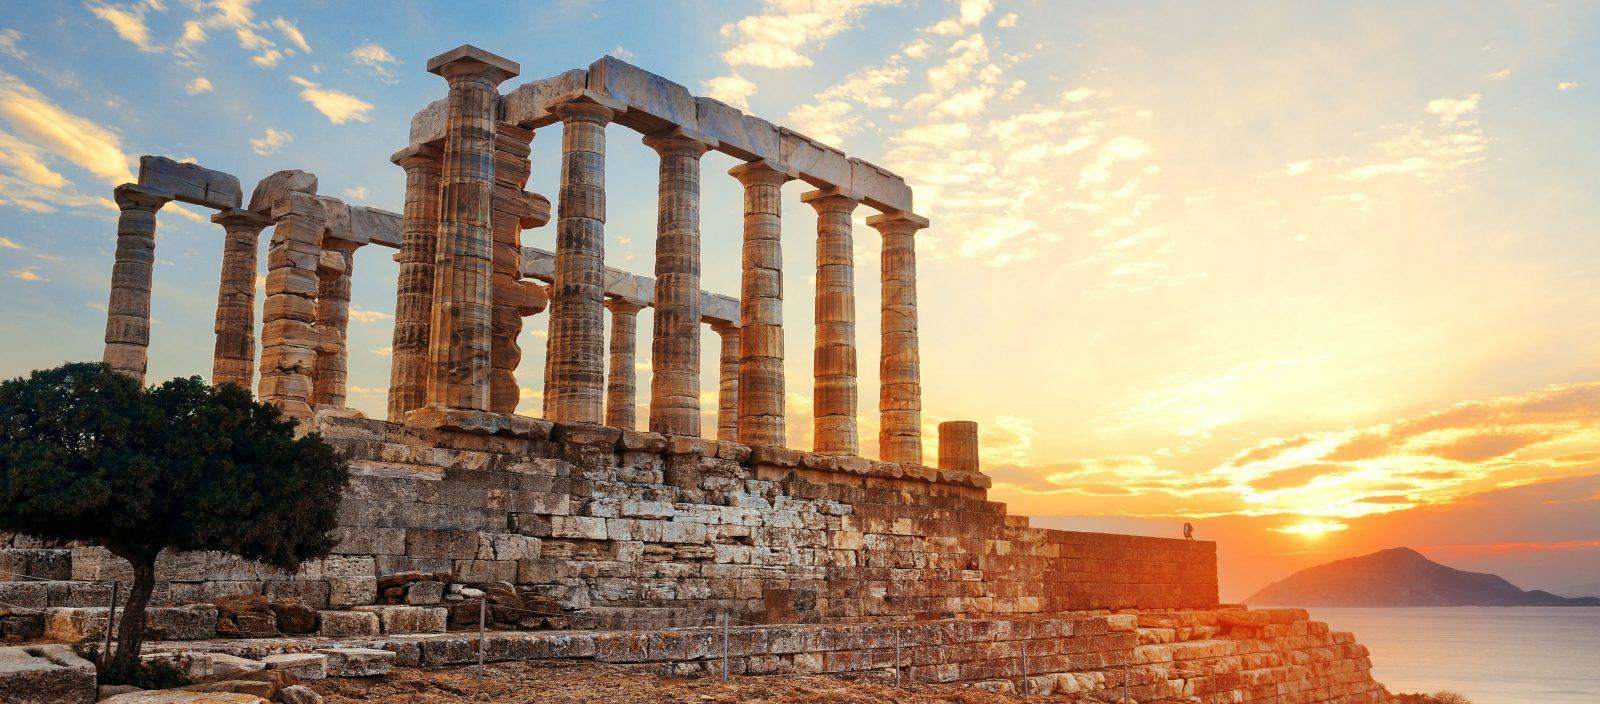 Greece: Wonders of an Ancient Empire